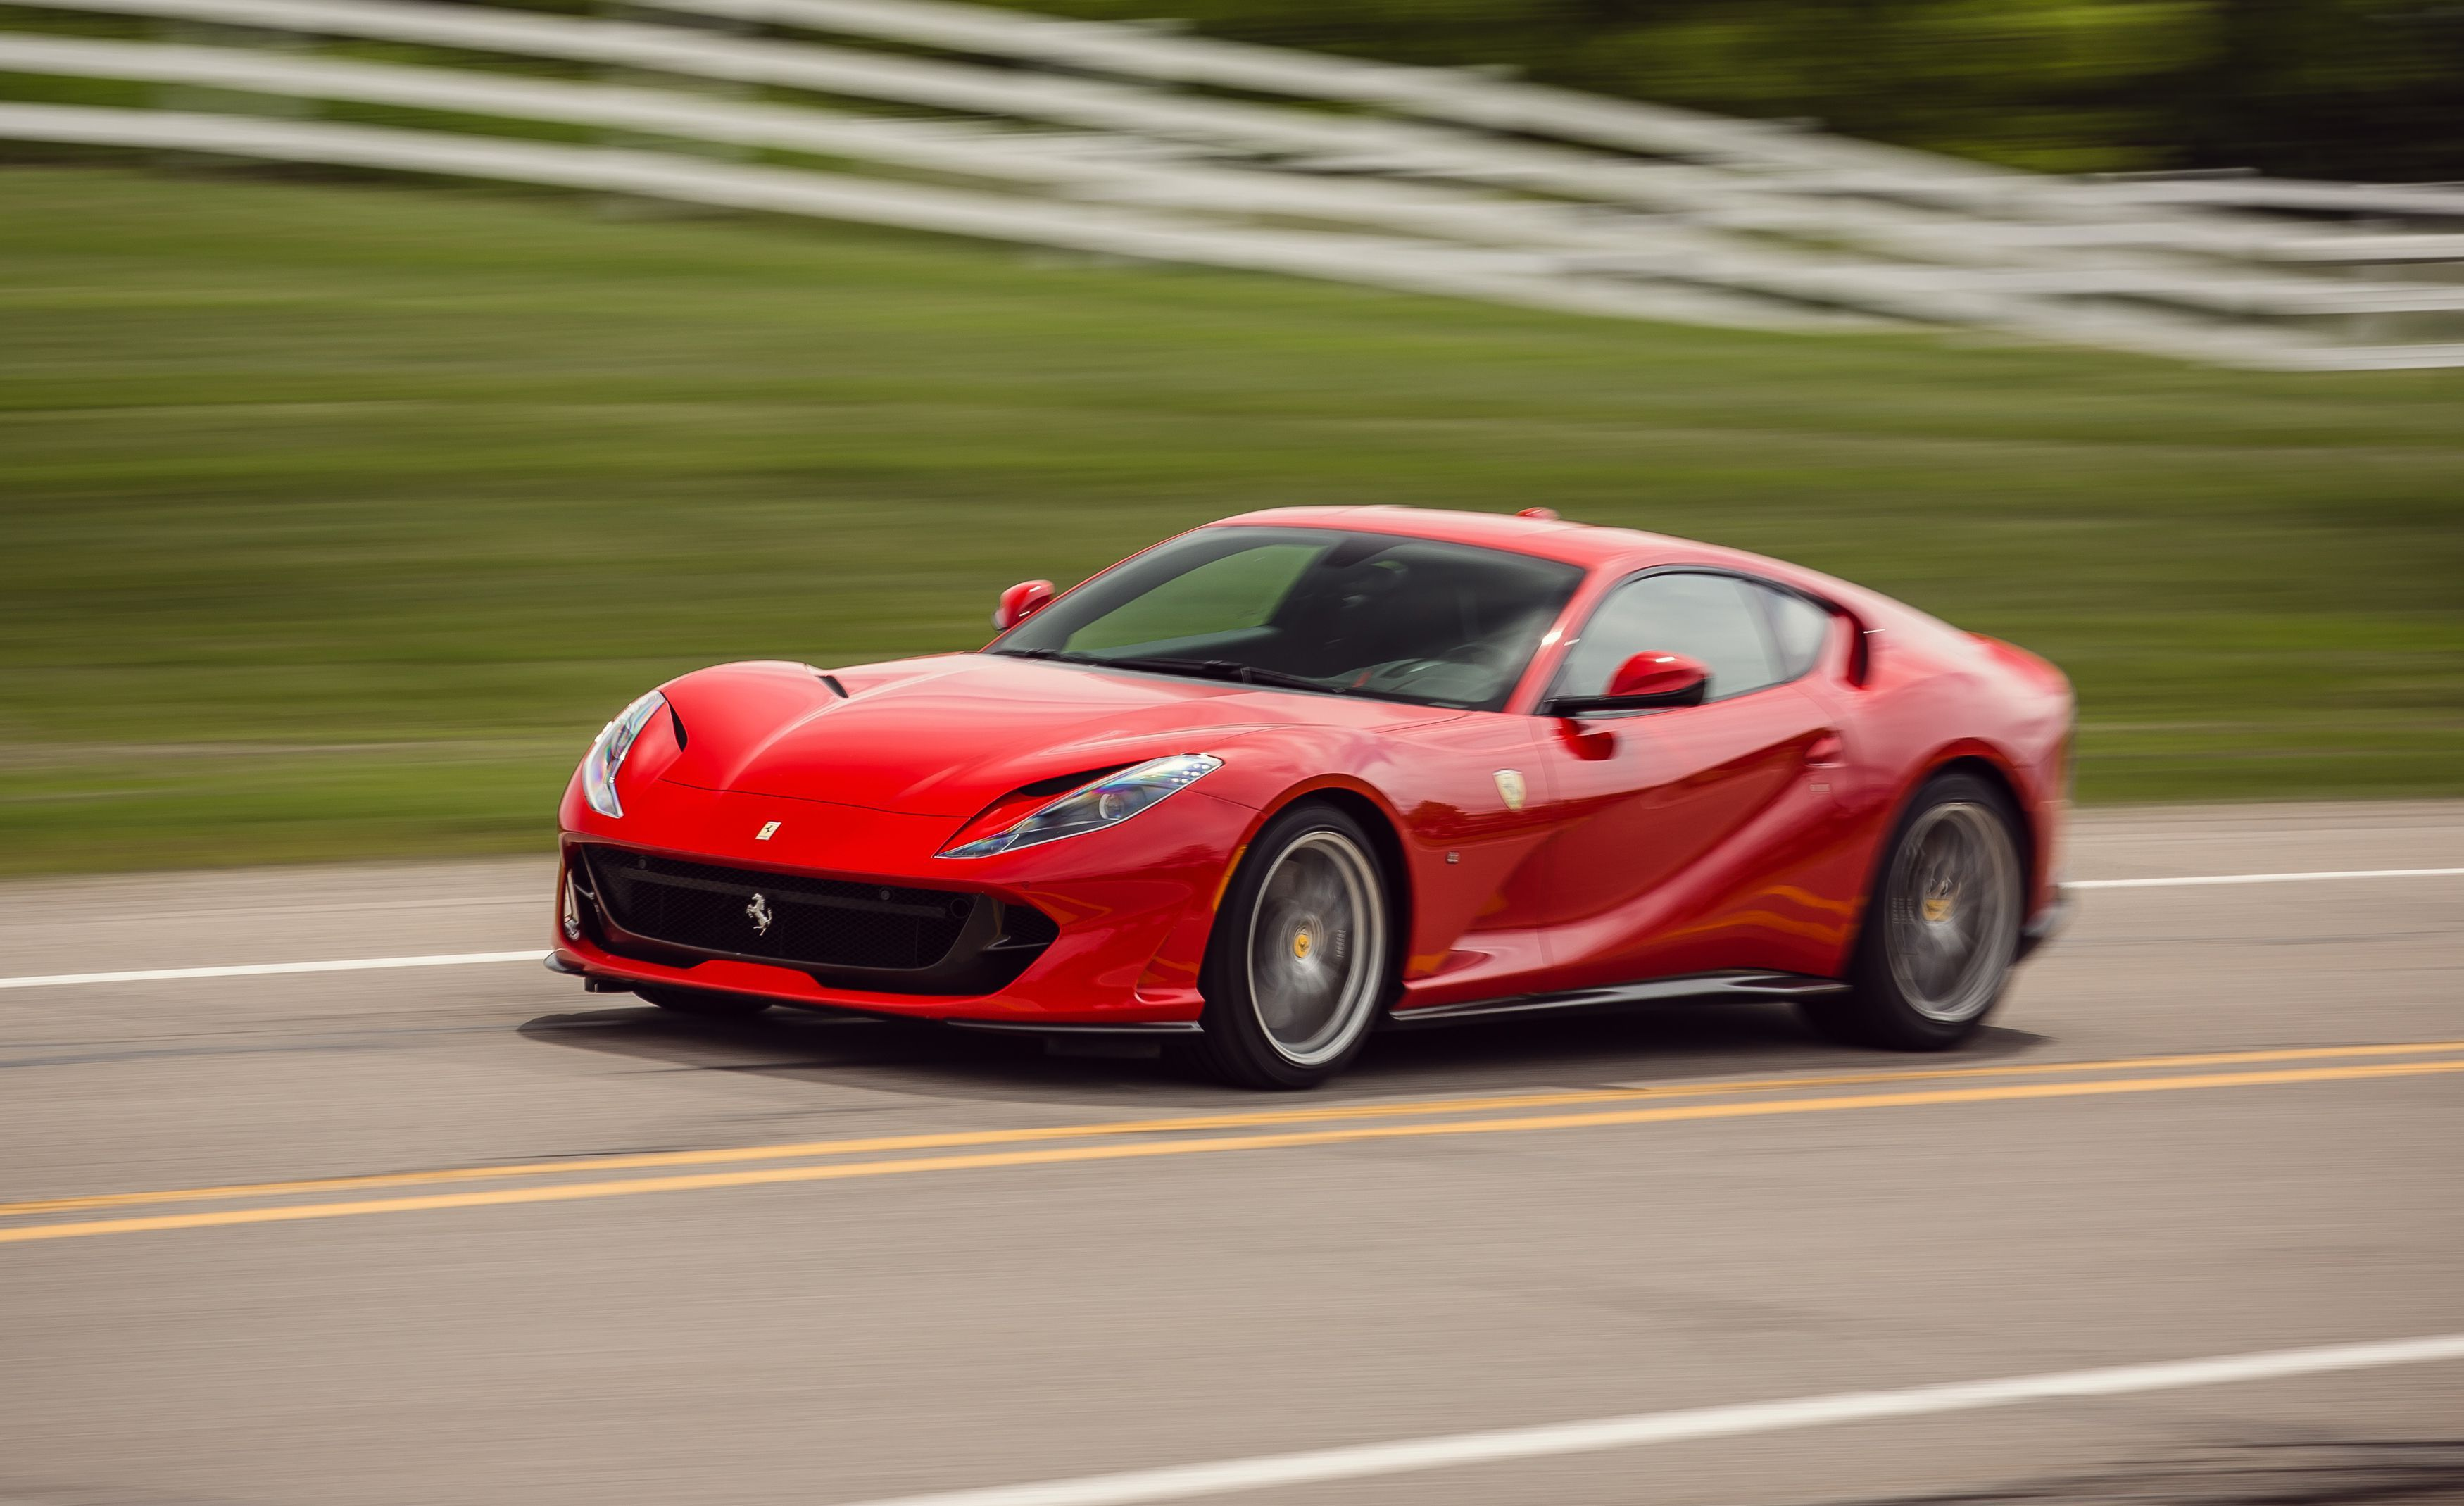 Harga Cat No Drop 2018 2019 Ferrari 812 Superfast